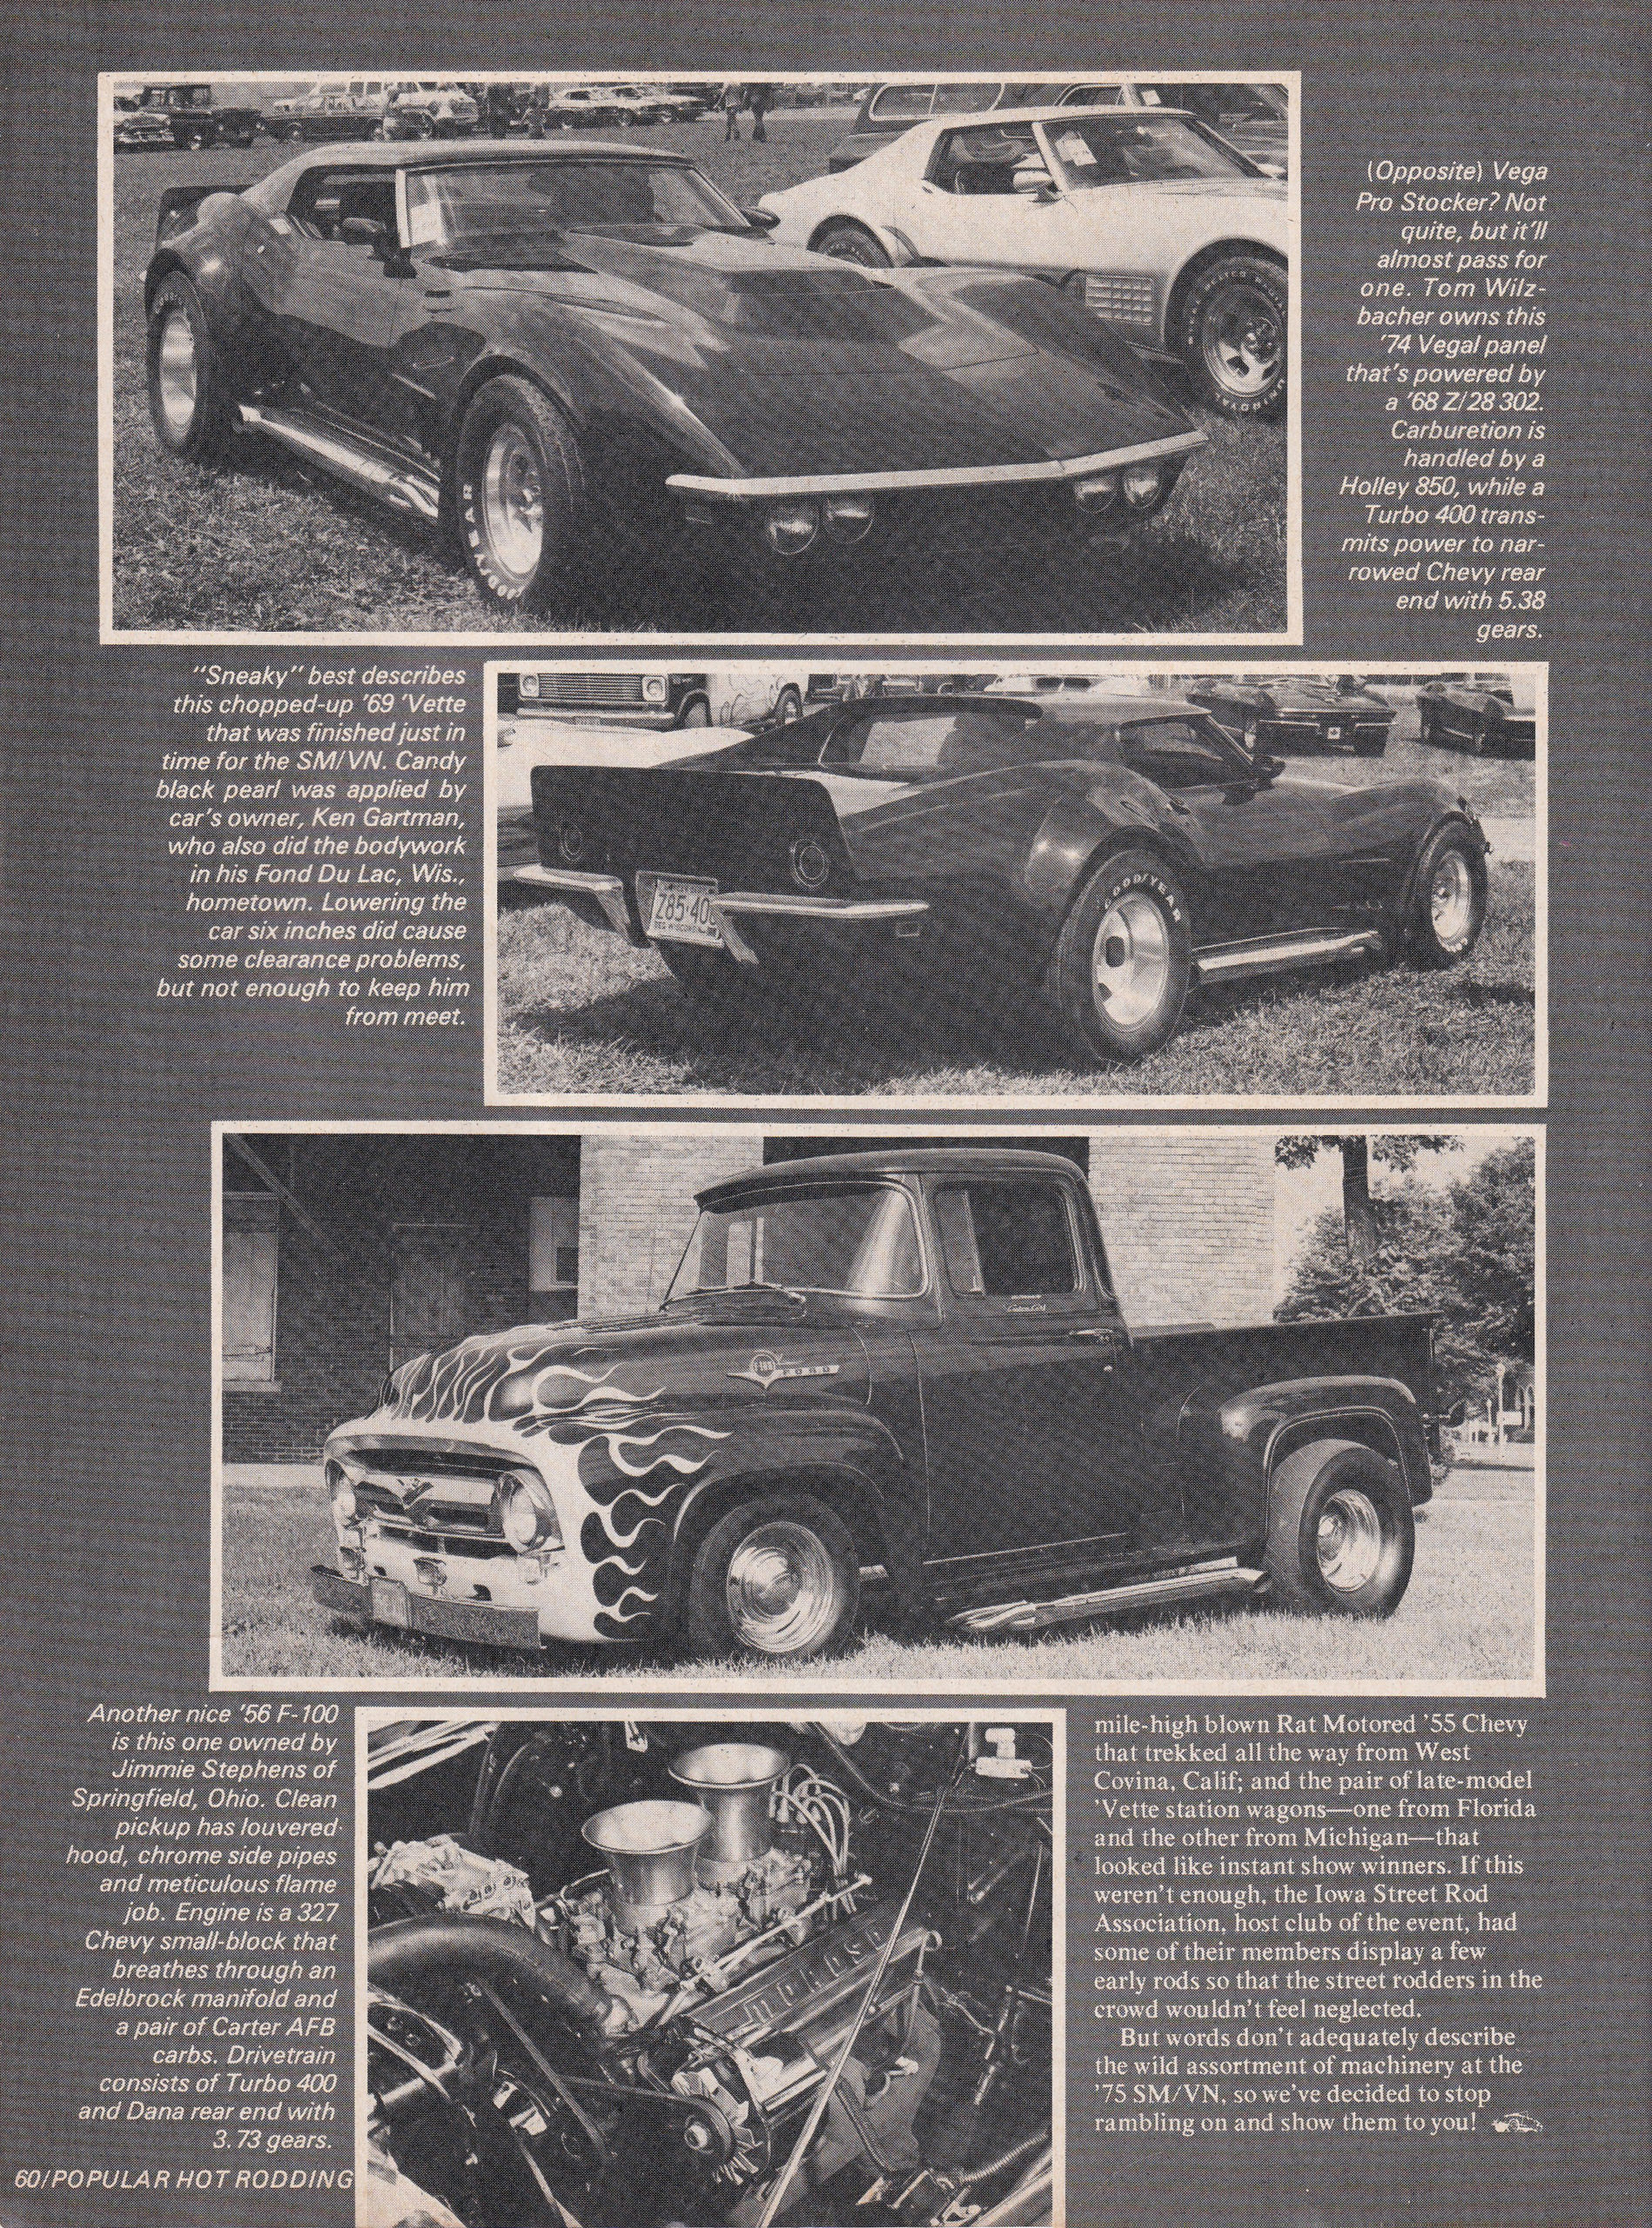 Street Machine / Van Nationals section from October 1975 issue of Popular Hot Rodding, page 5.